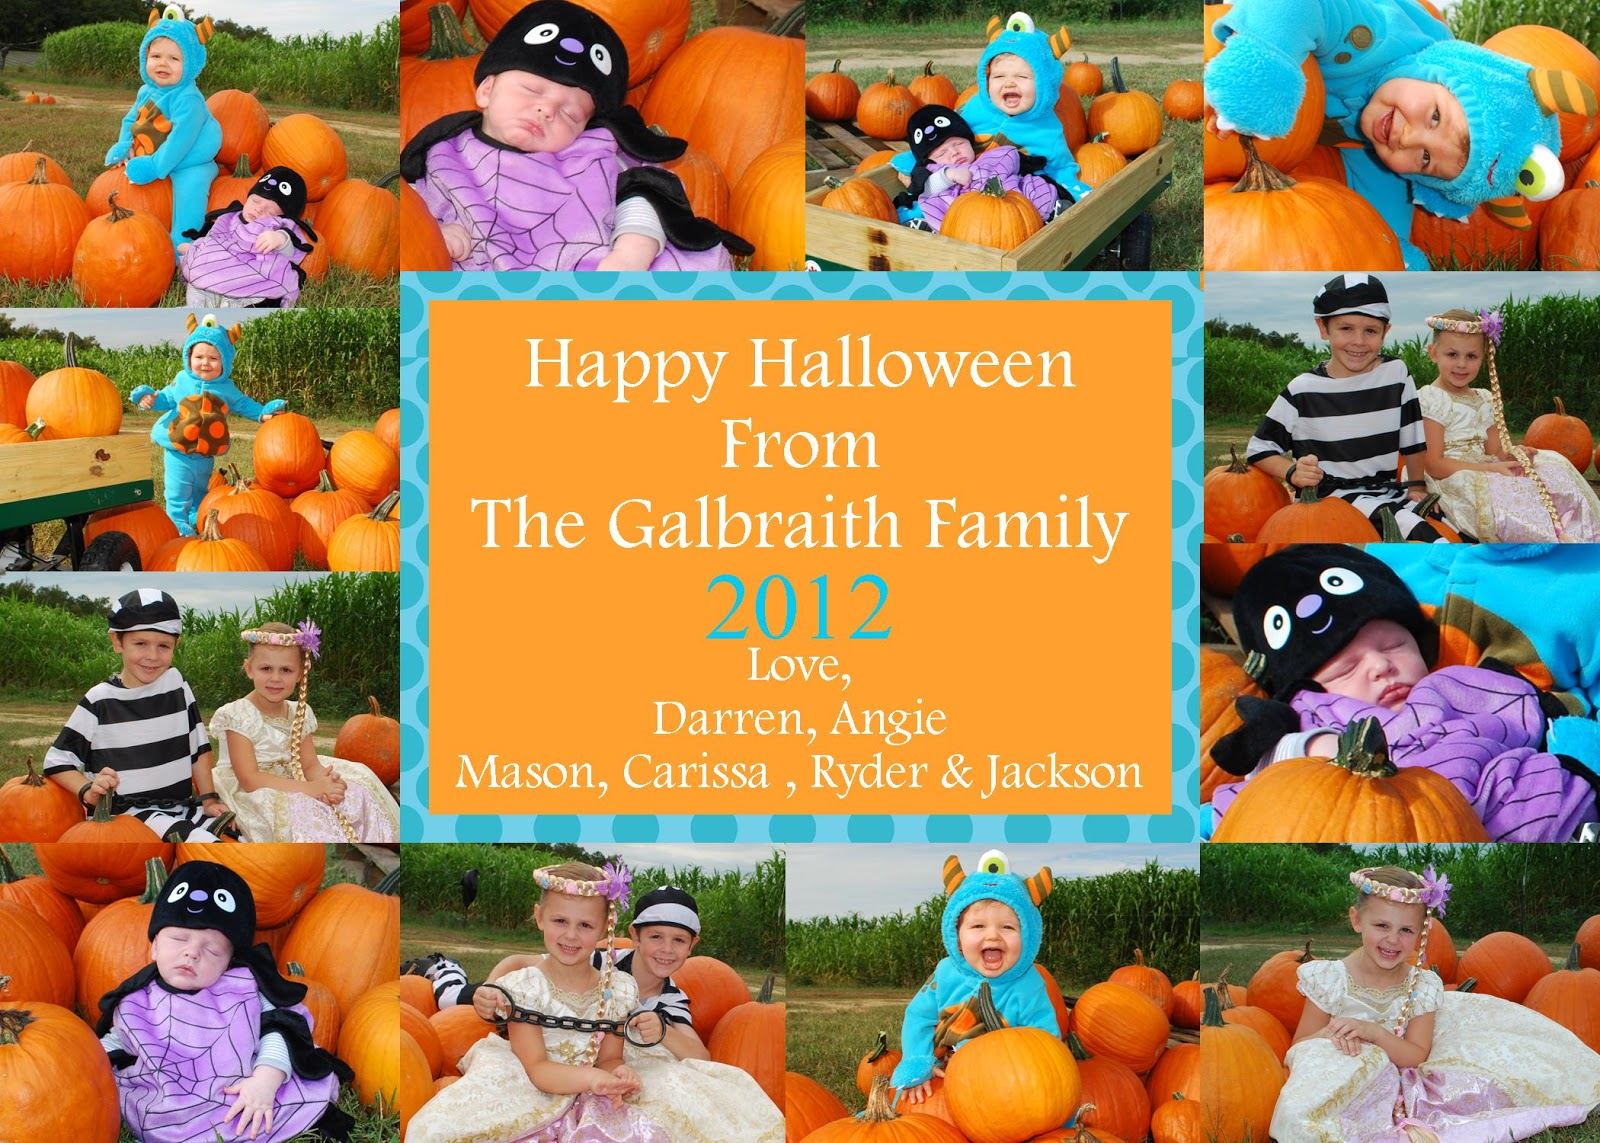 Galbraith family